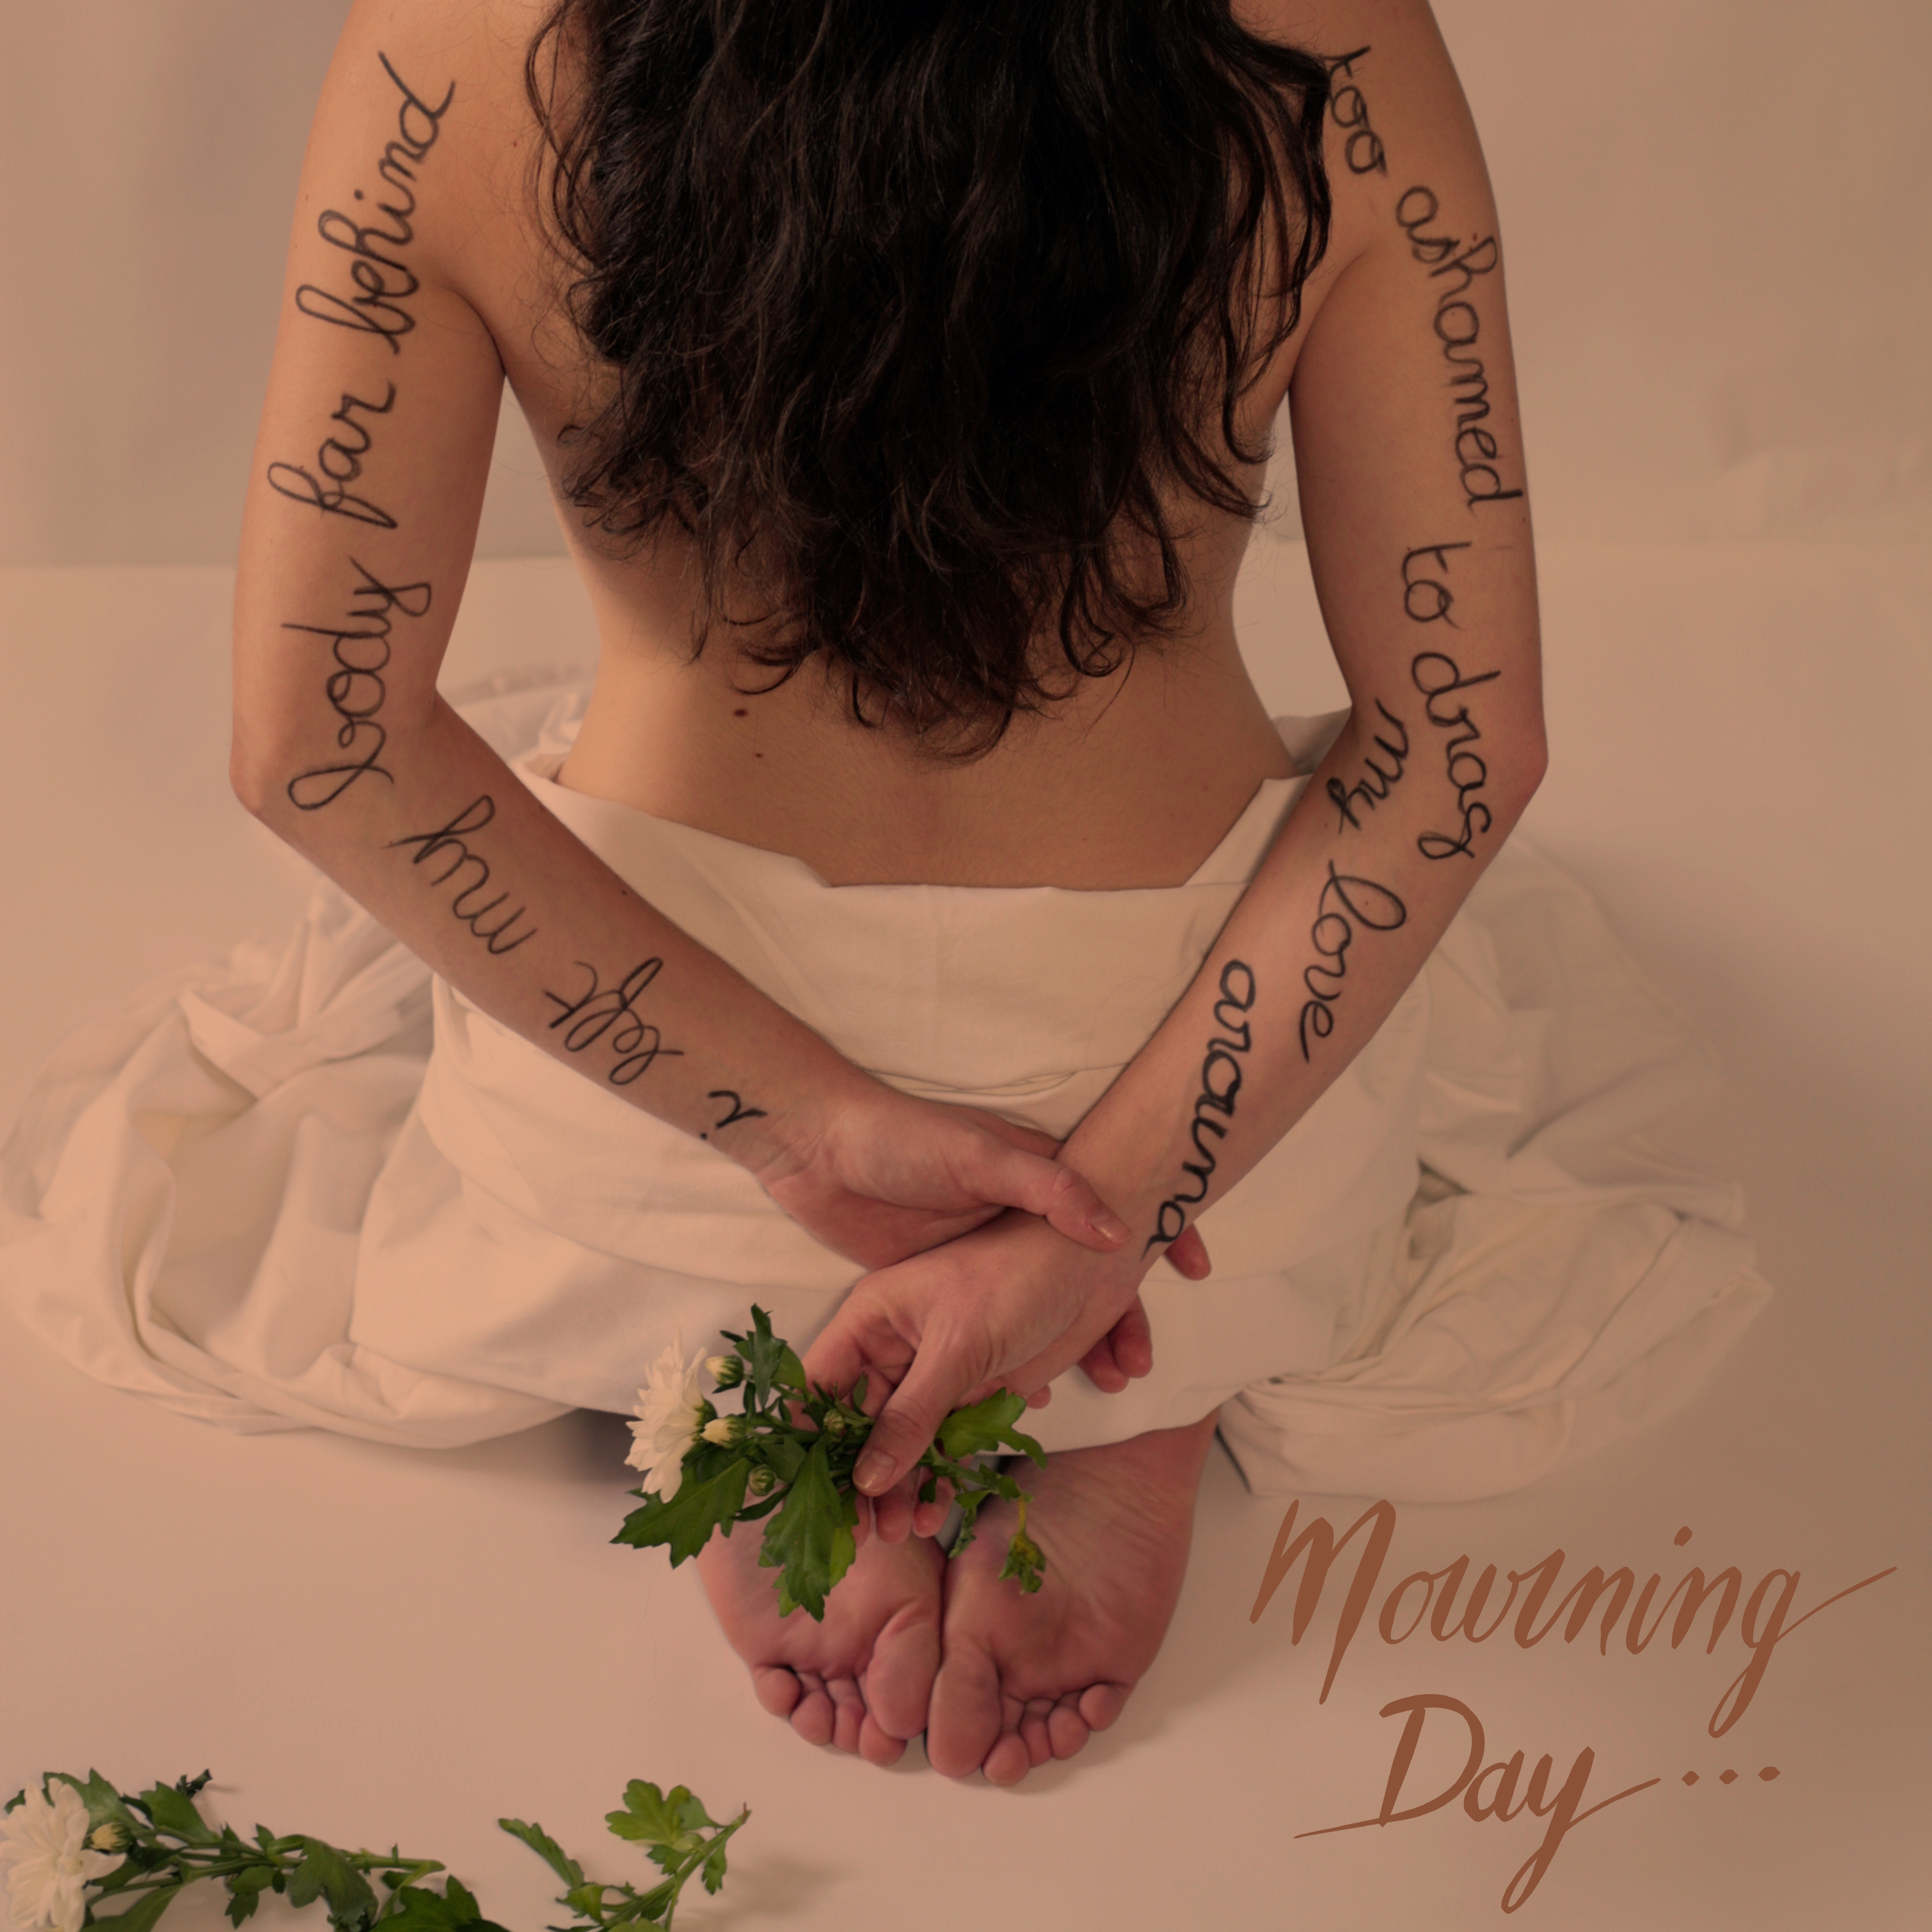 Mourning Day